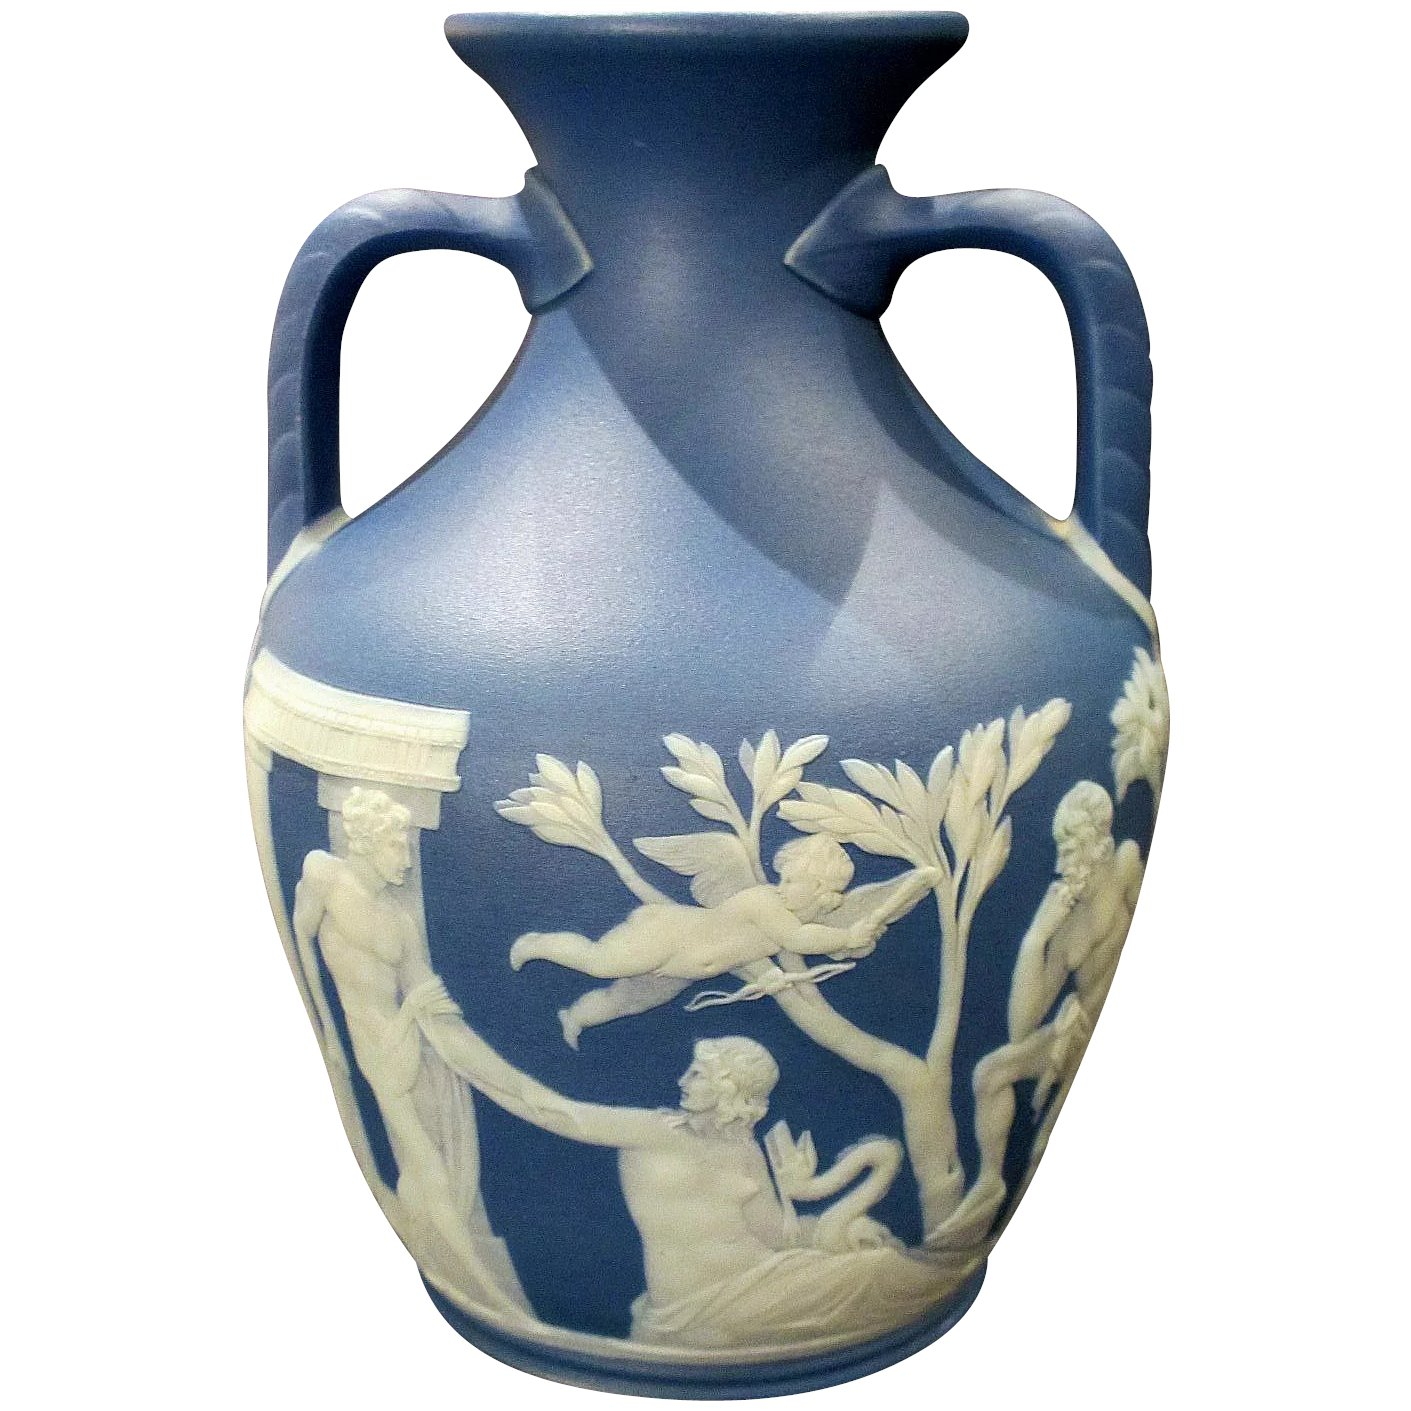 19th century wedgwood jasperware portland vase mint condition 19th century wedgwood jasperware portland vase mint condition click to expand reviewsmspy